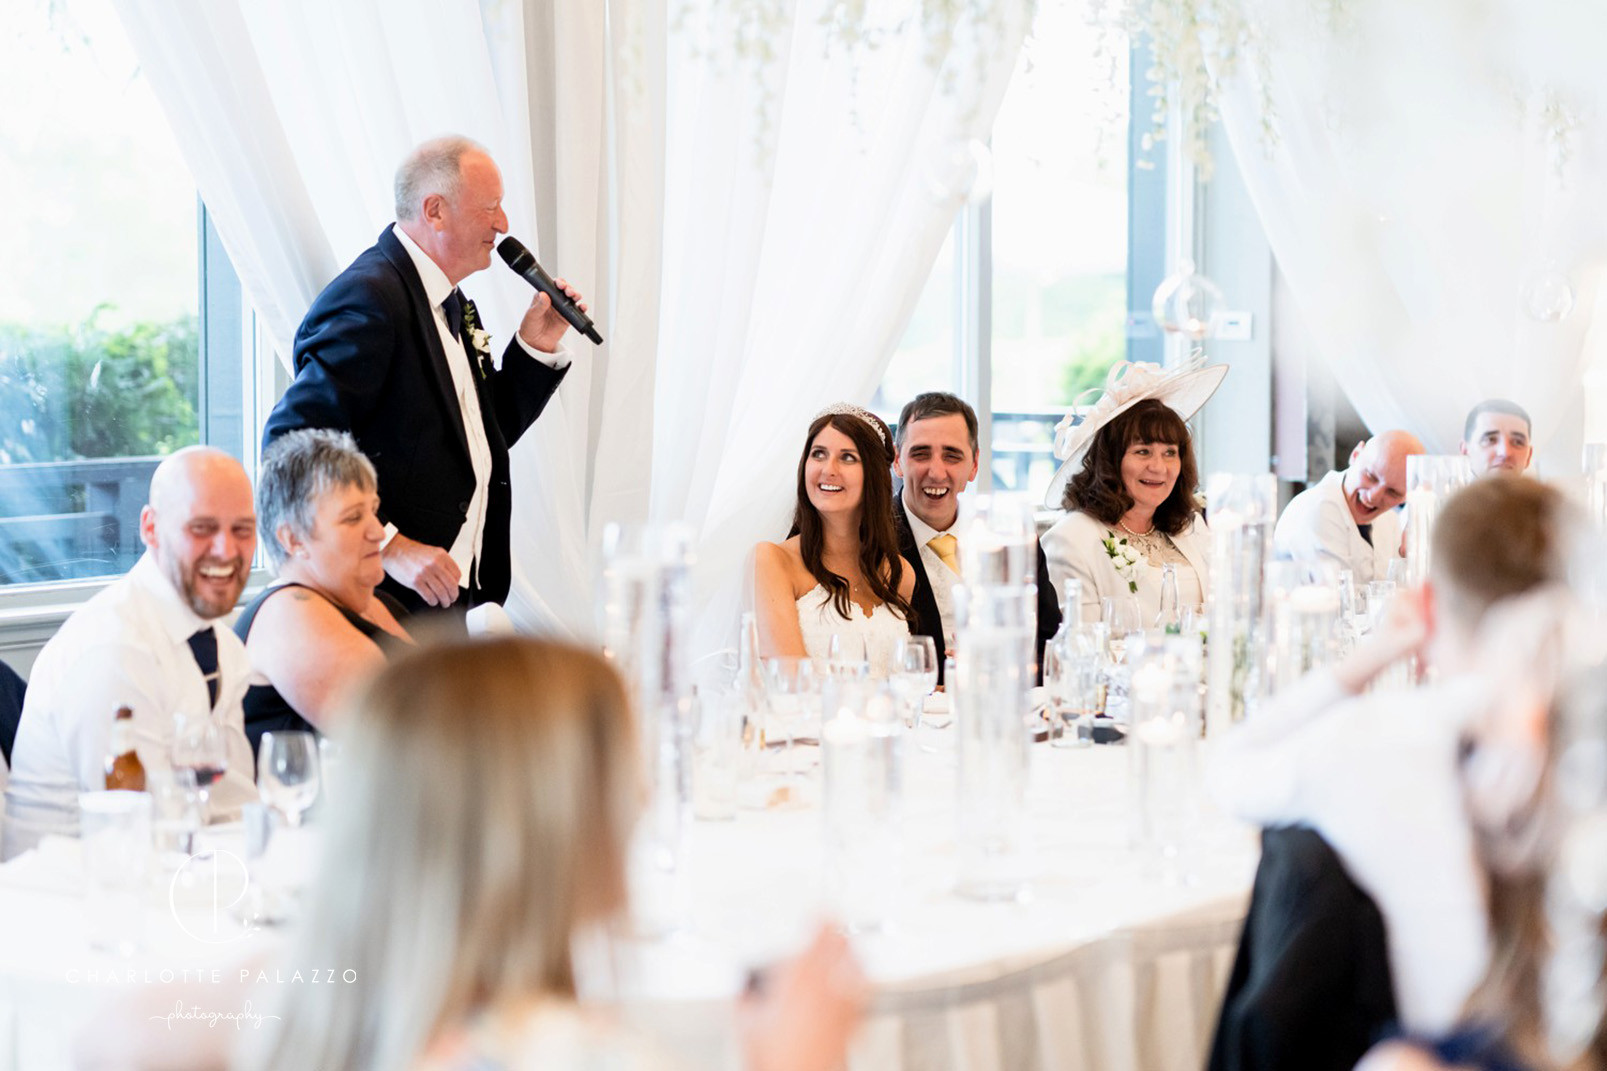 Fine_art_wedding_Photography_Cheshire_Wedding_Venues_The_Mere_Resort_0042.jpg